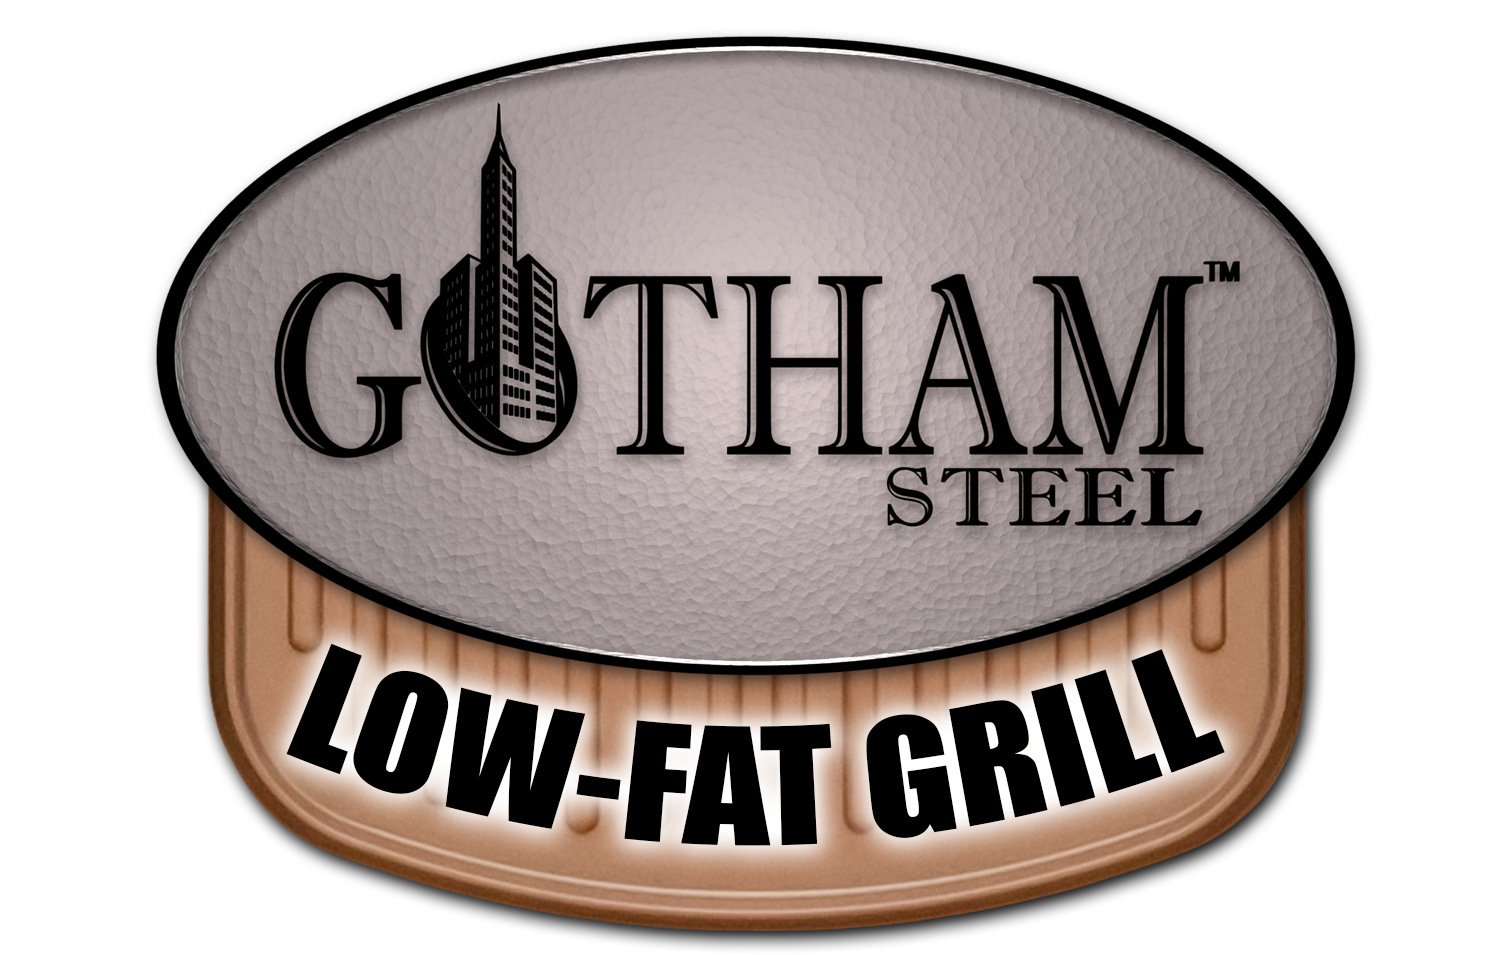 Gotham Steel Low-Fat Grill | Make healthy low-fat food